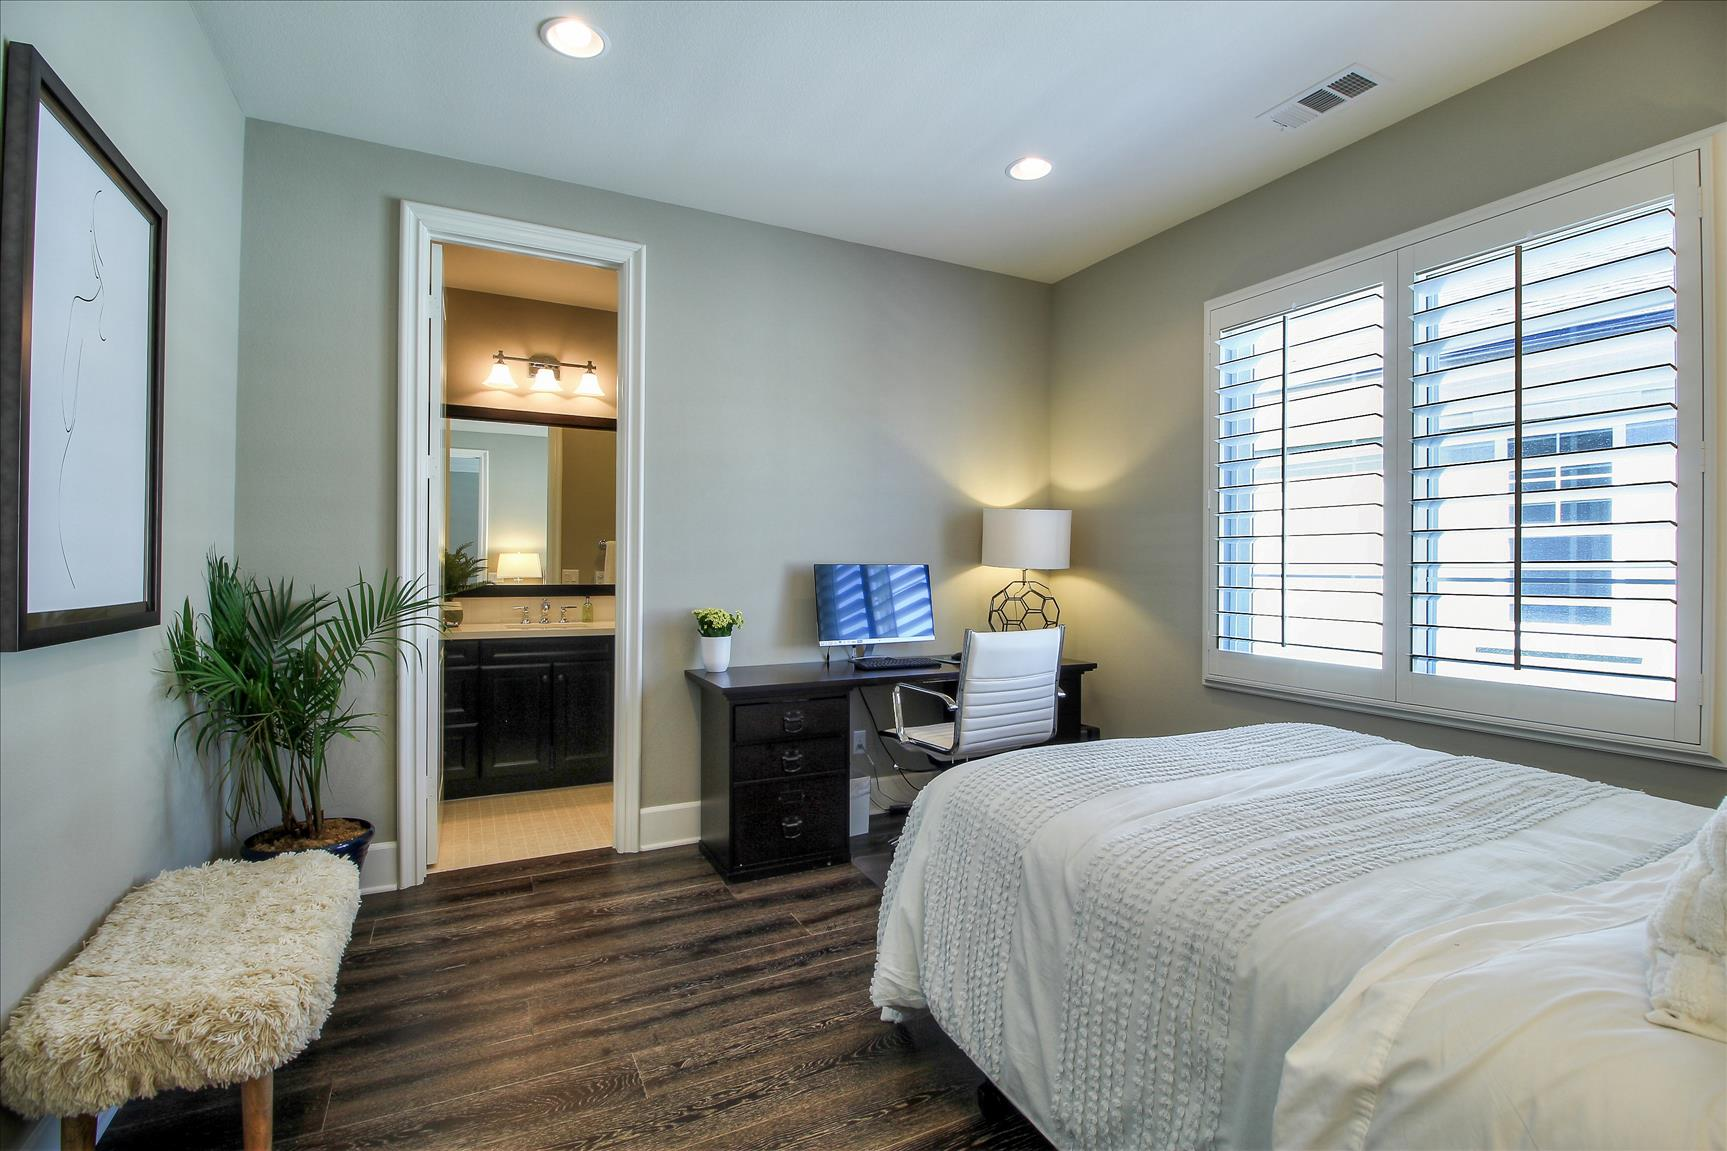 17471 Kennebunk Ln, Huntington Beach, CA  9264934.jpg